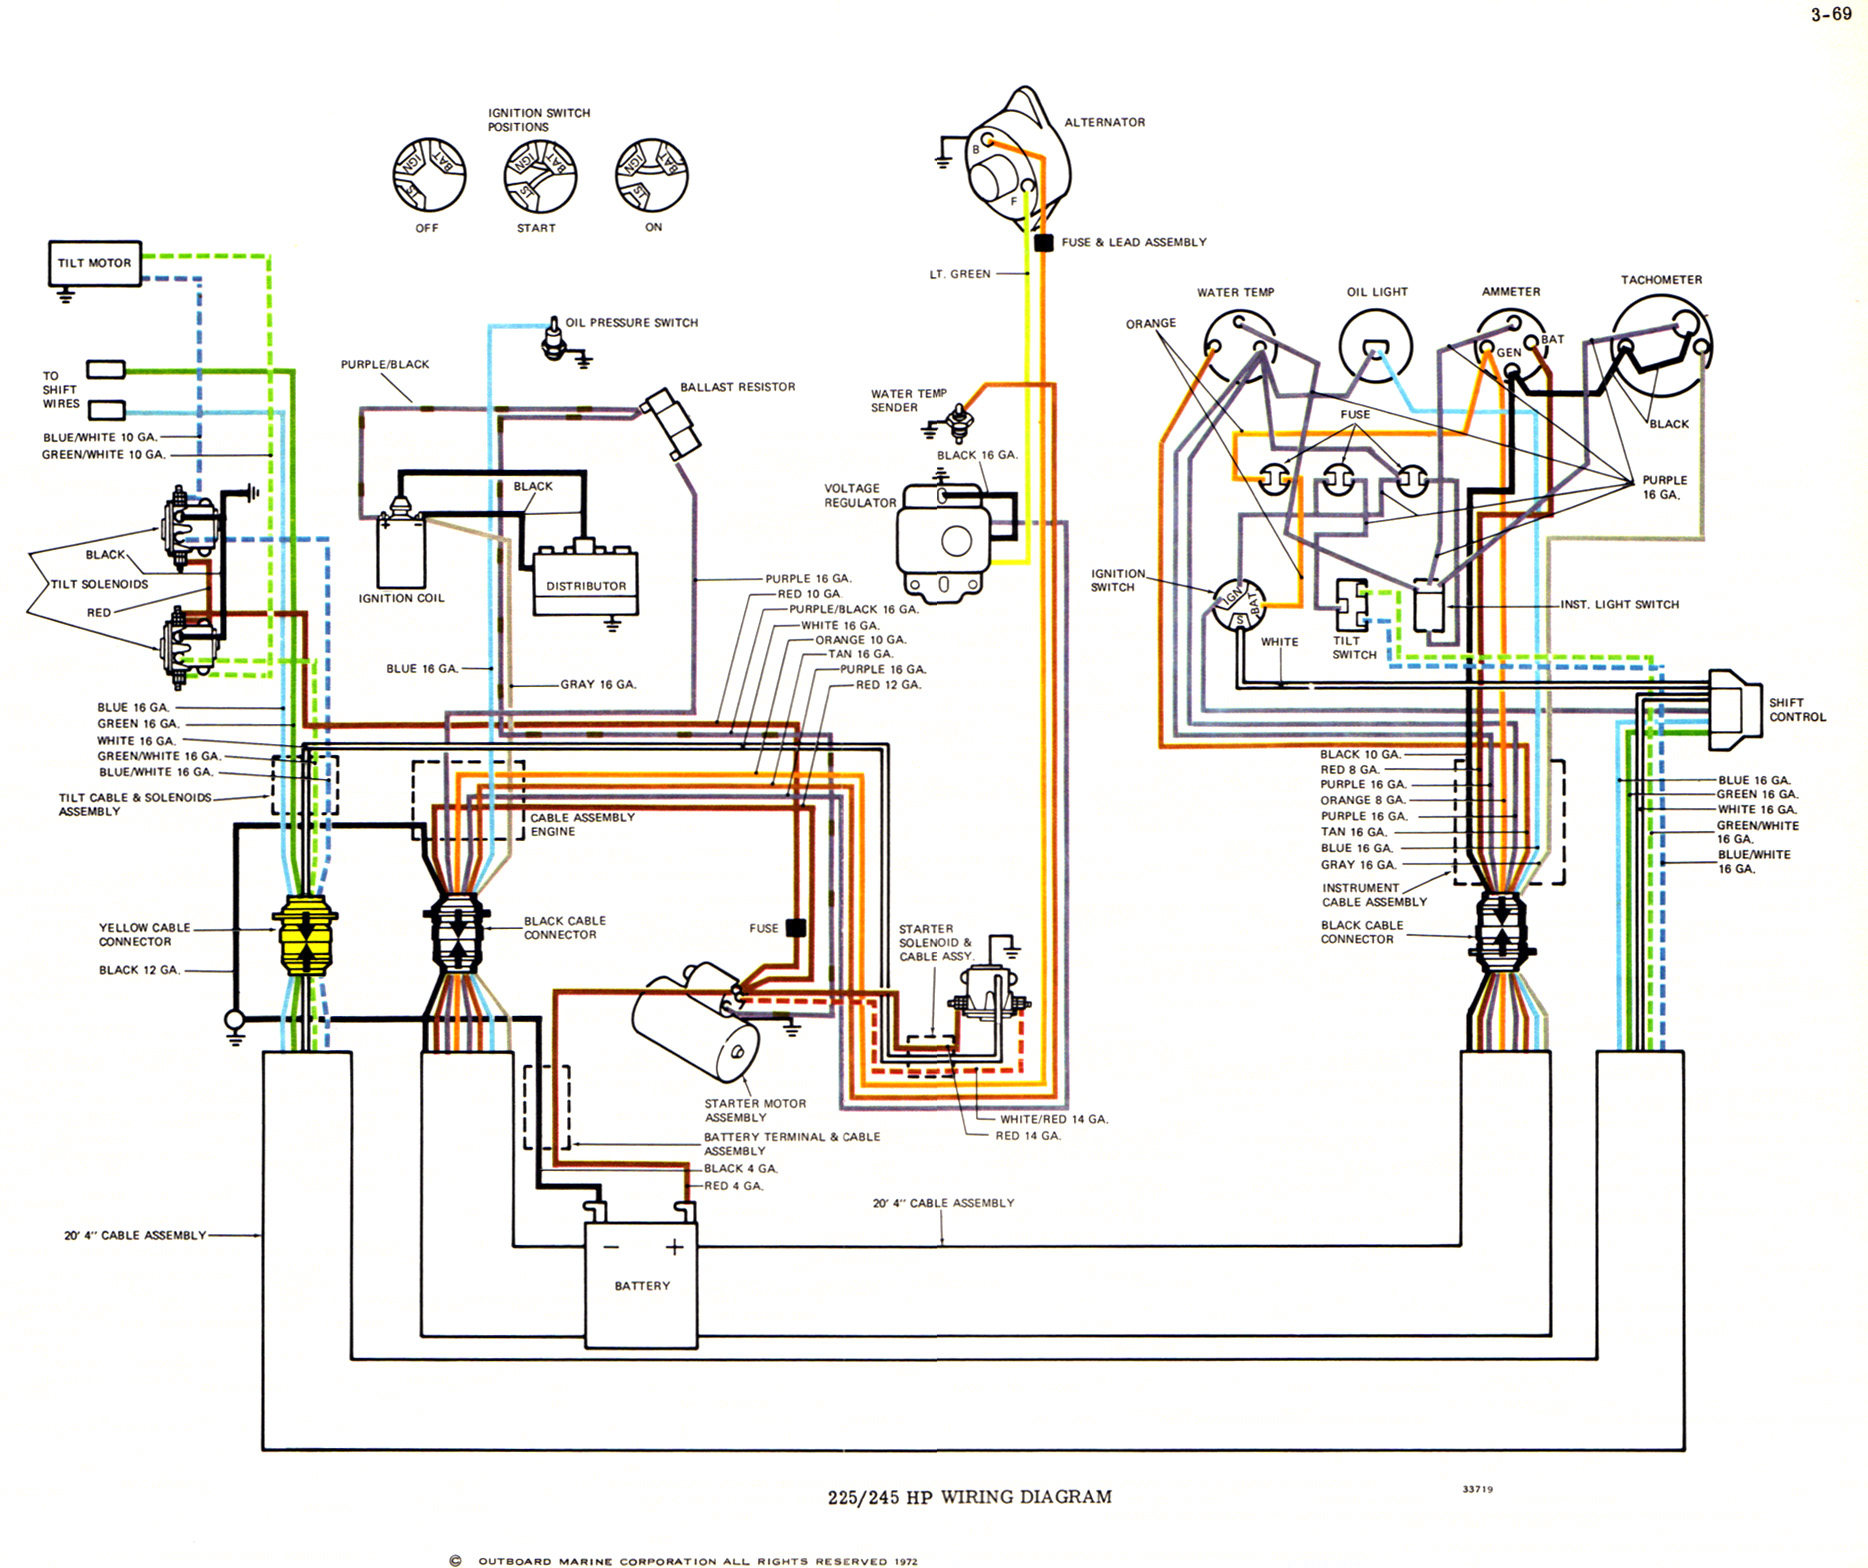 73_OMC_V8_all_big evinrude boats wiring � 2004 lee k shuster evinrude wiring diagram at bayanpartner.co